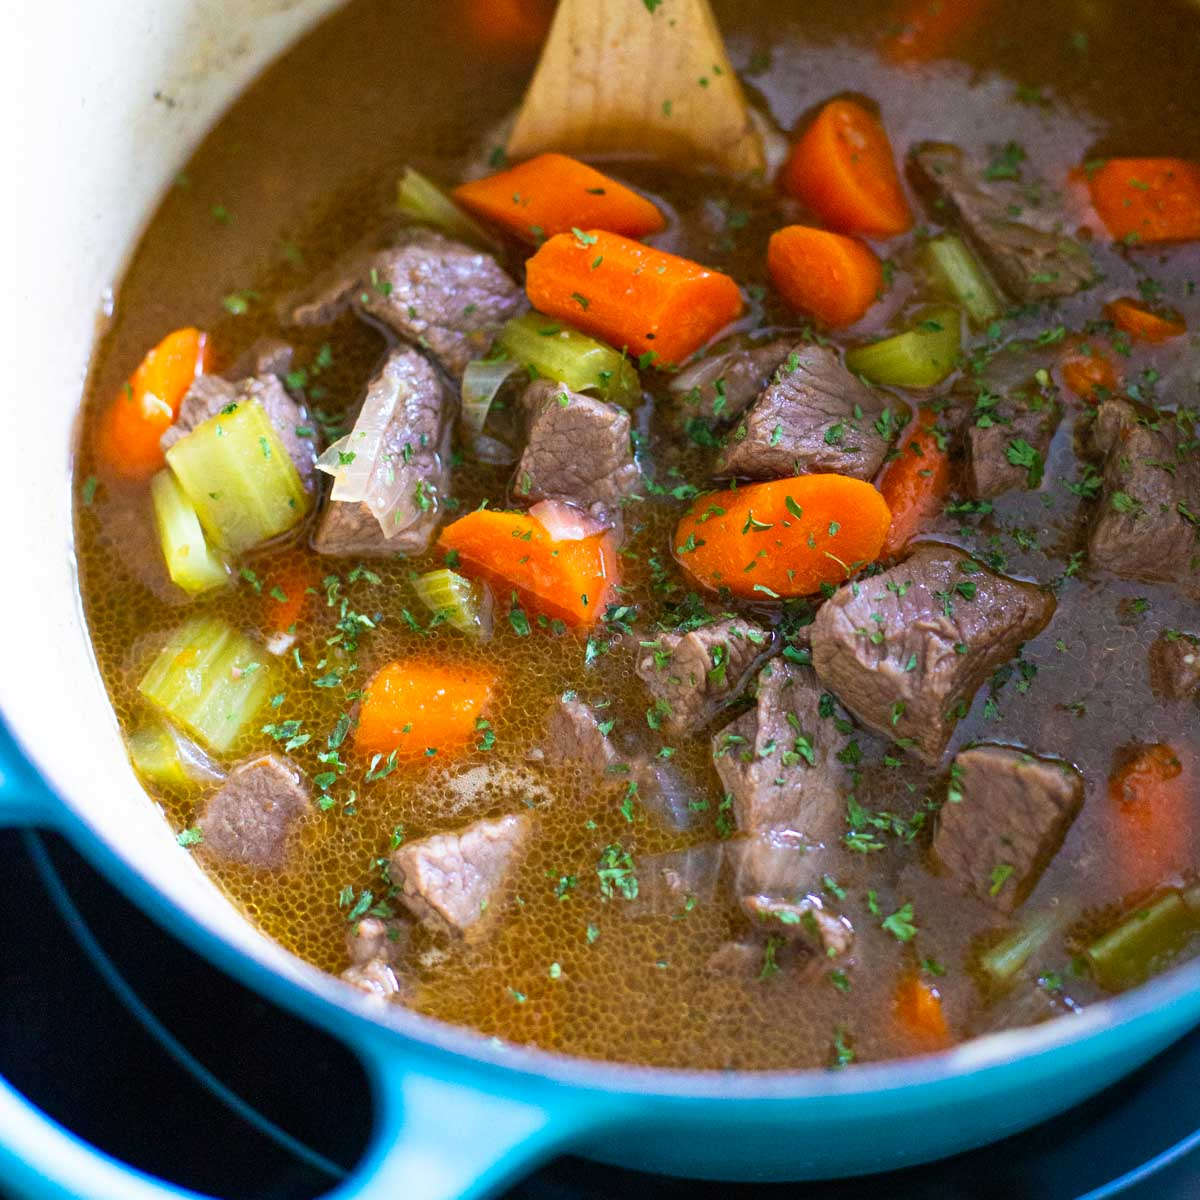 A blue dutch oven has a wooden spoon stirring beef stew.